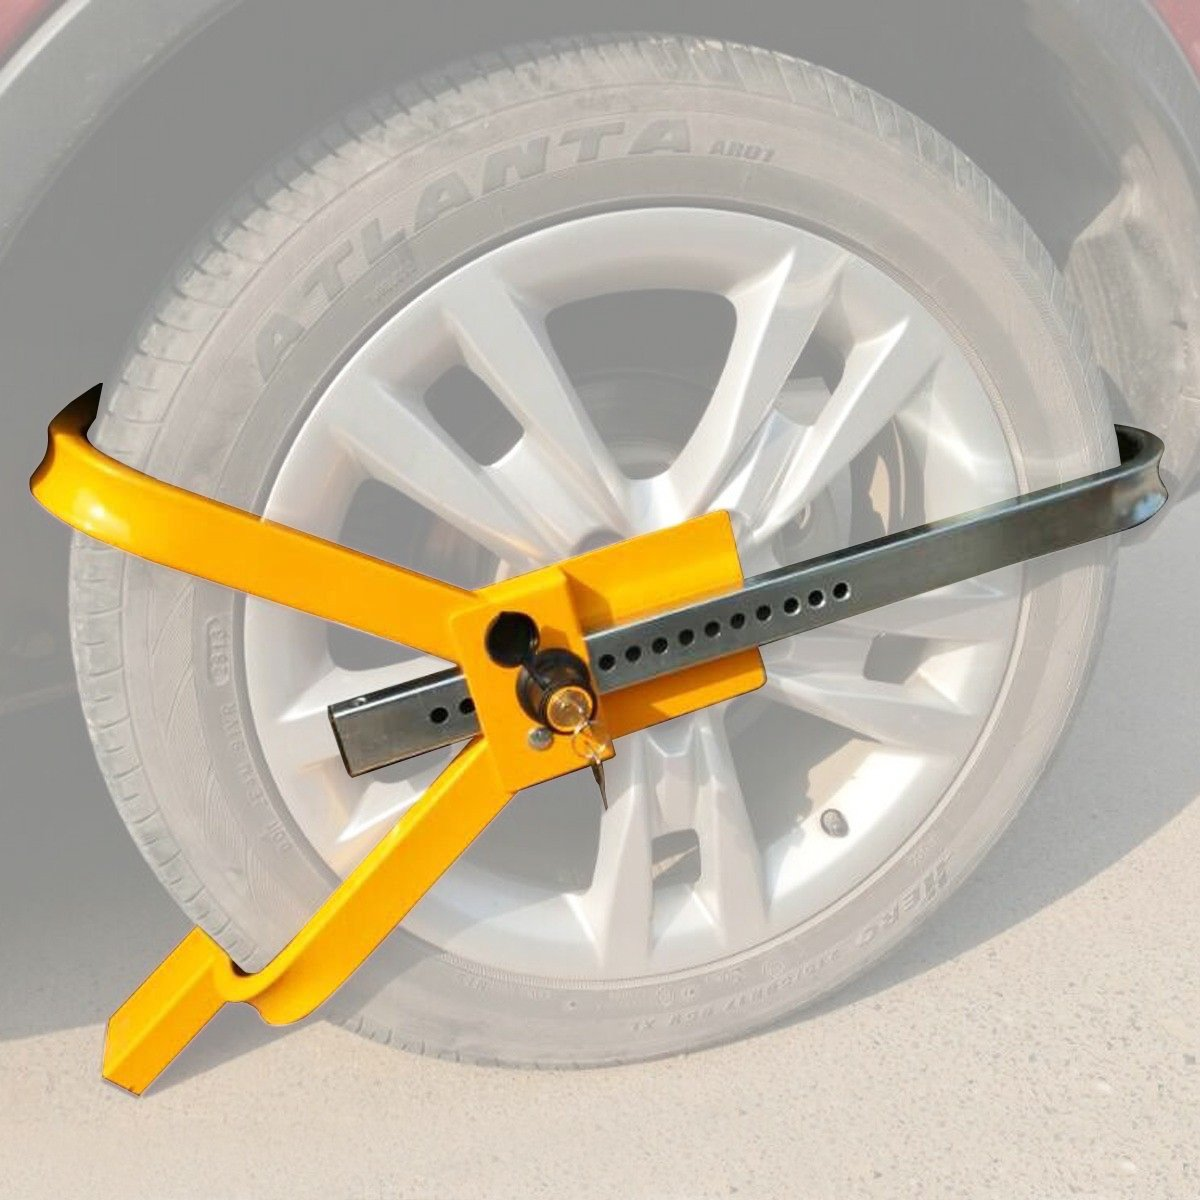 Goplus Wheel Lock Tire Trailer Auto Car Truck Anti-Theft Security Towing Tire Clamp by Goplus (Image #1)